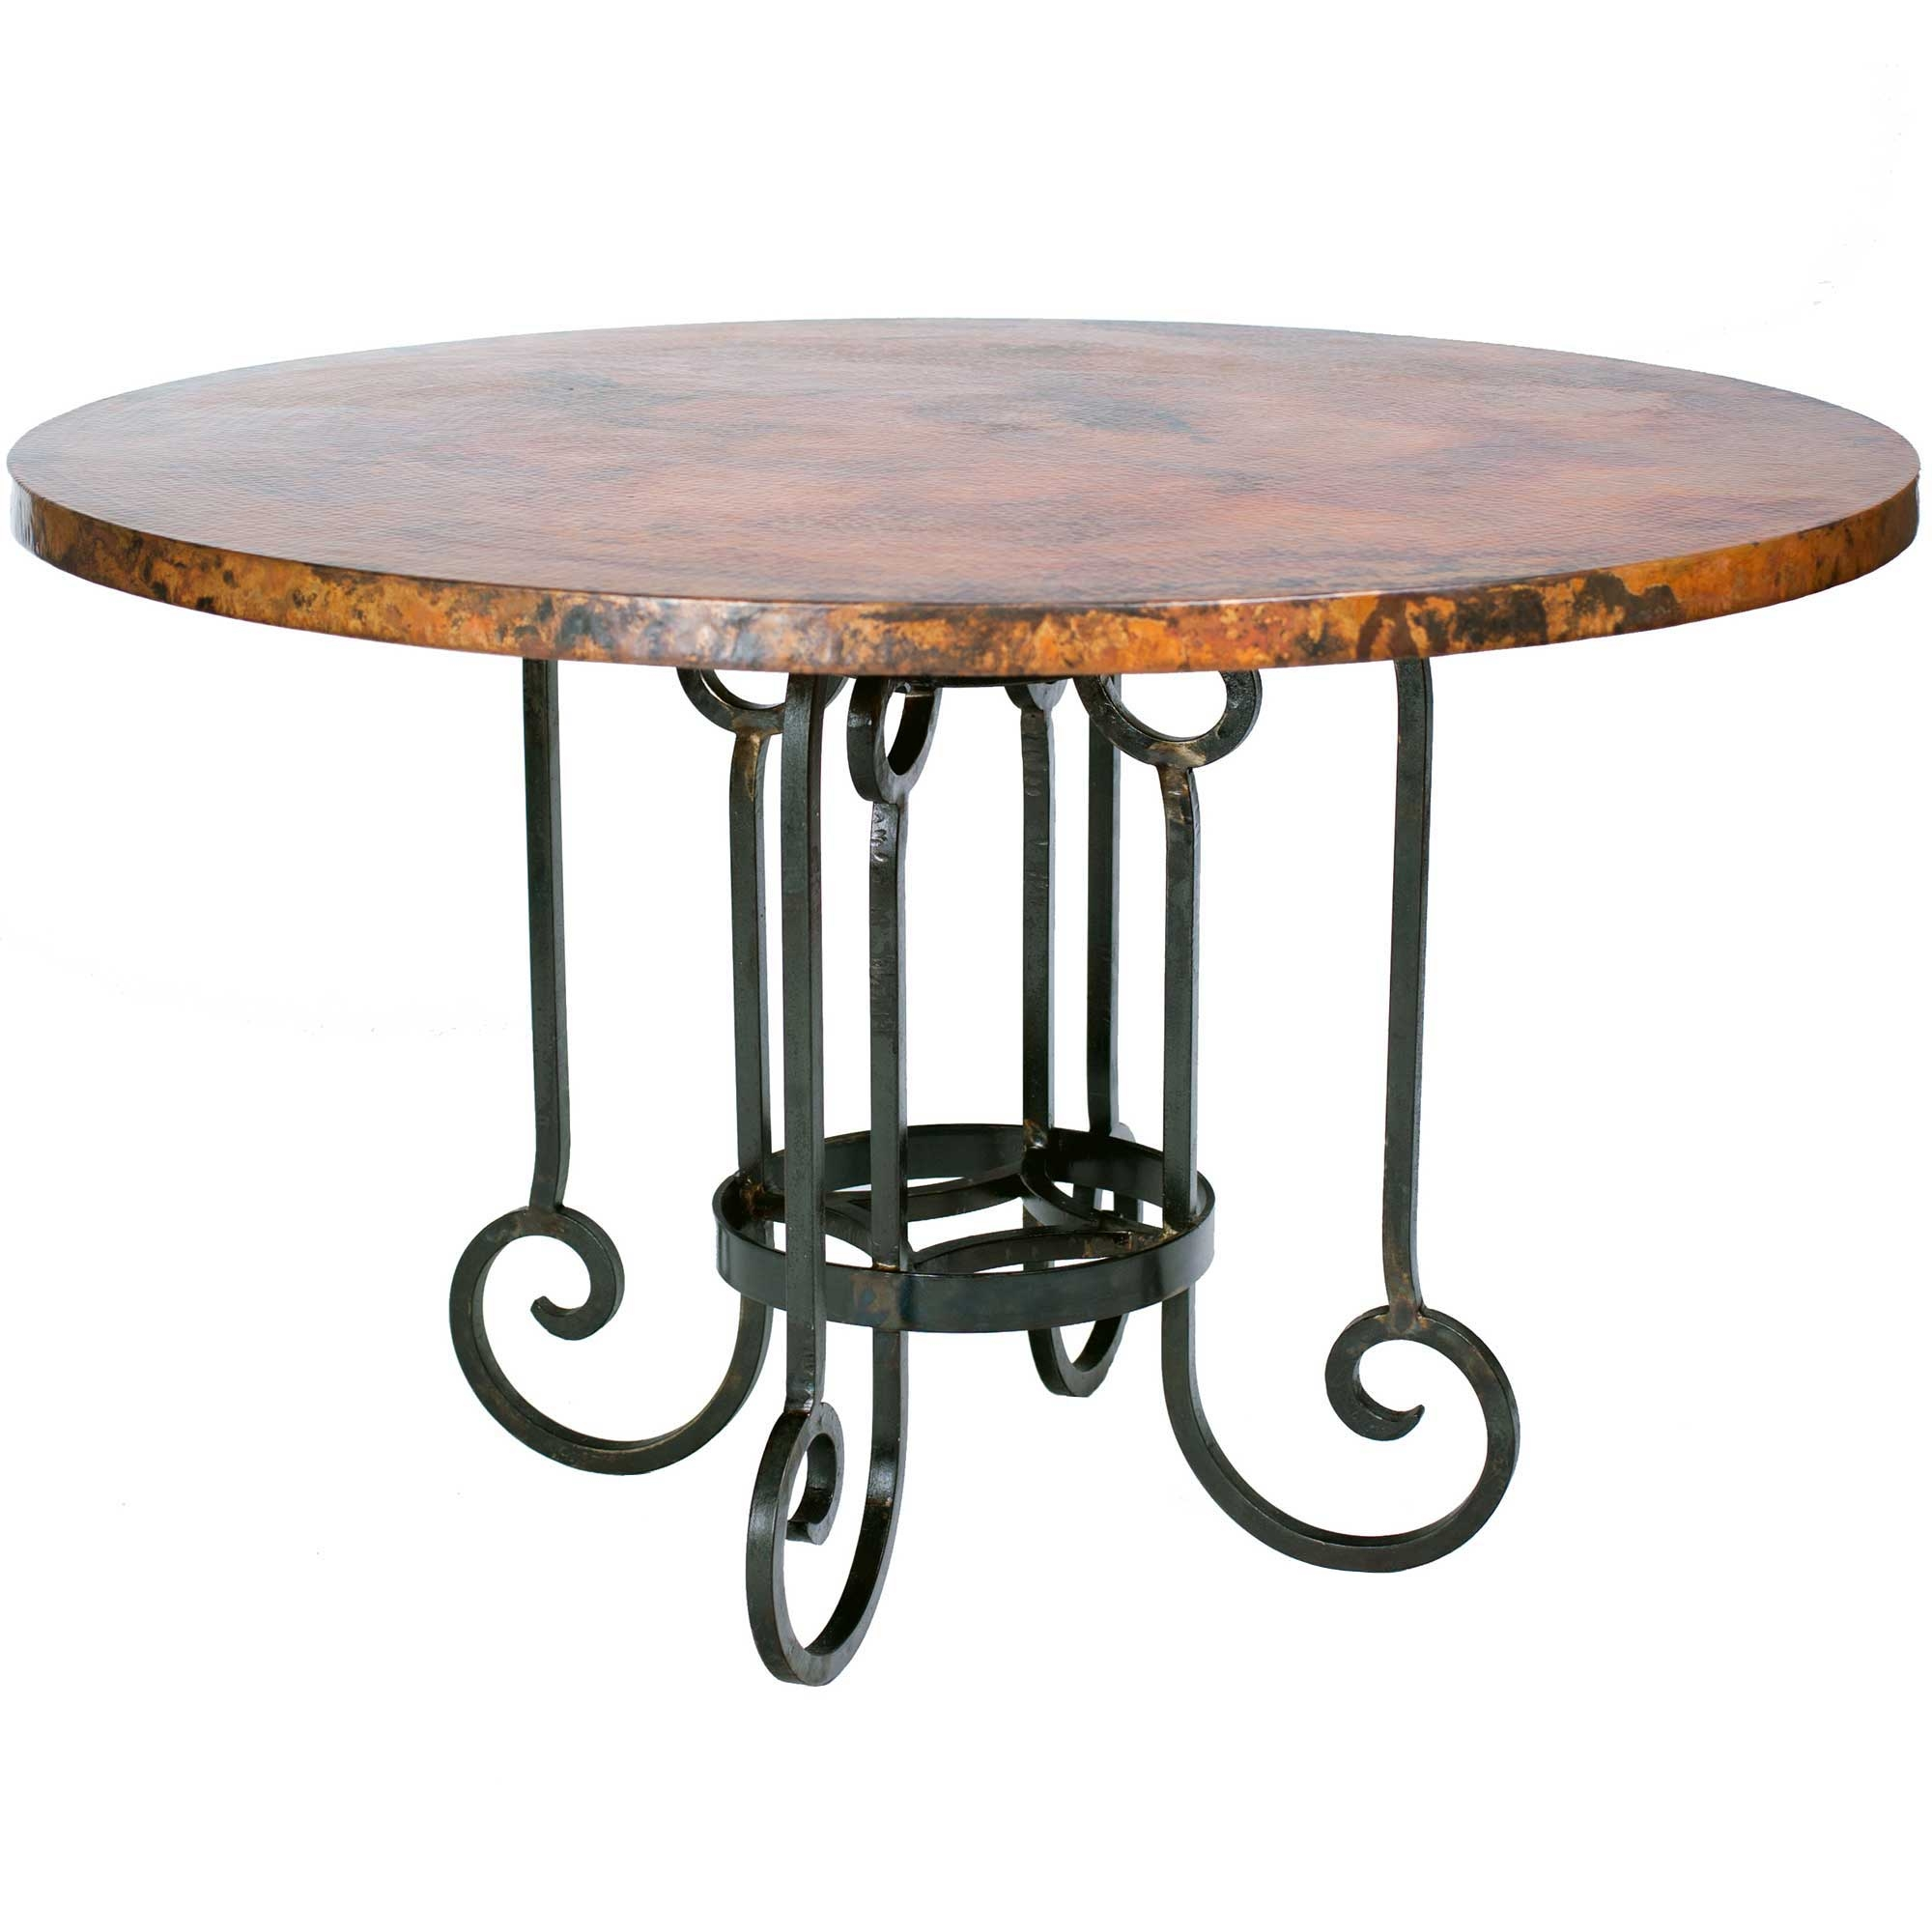 Picture of: Curled Leg Iron Dining Table With 48 In Hammered Copper Top